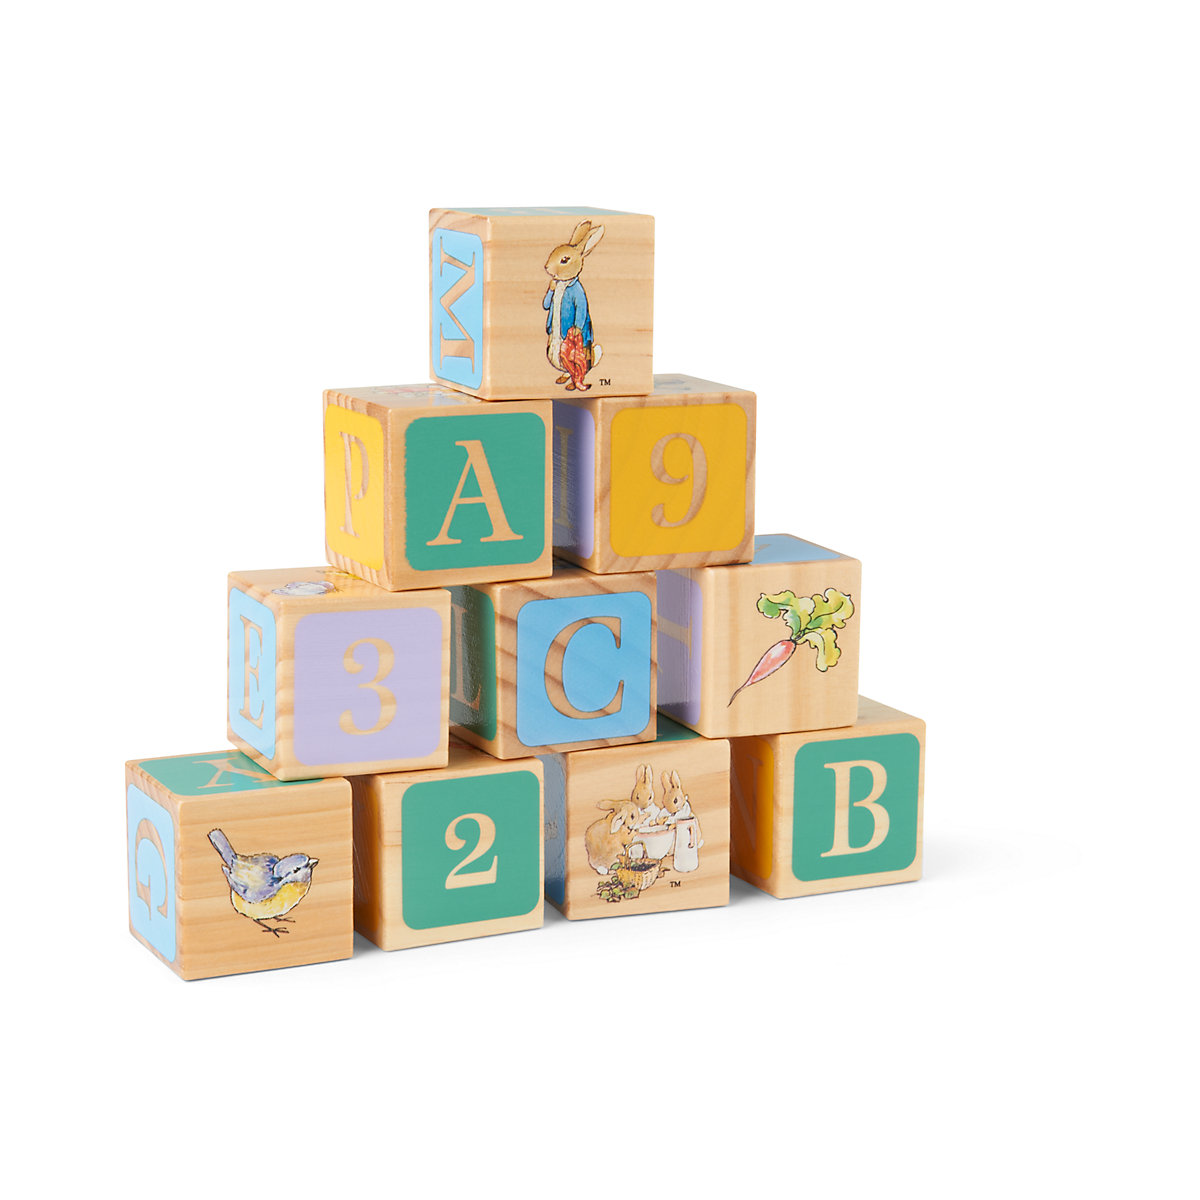 New ELC Kids Beatrix Potter Peter Rabbit Wooden Picture Blocks Toy. 12 months+ - Beatrix Potter Gifts